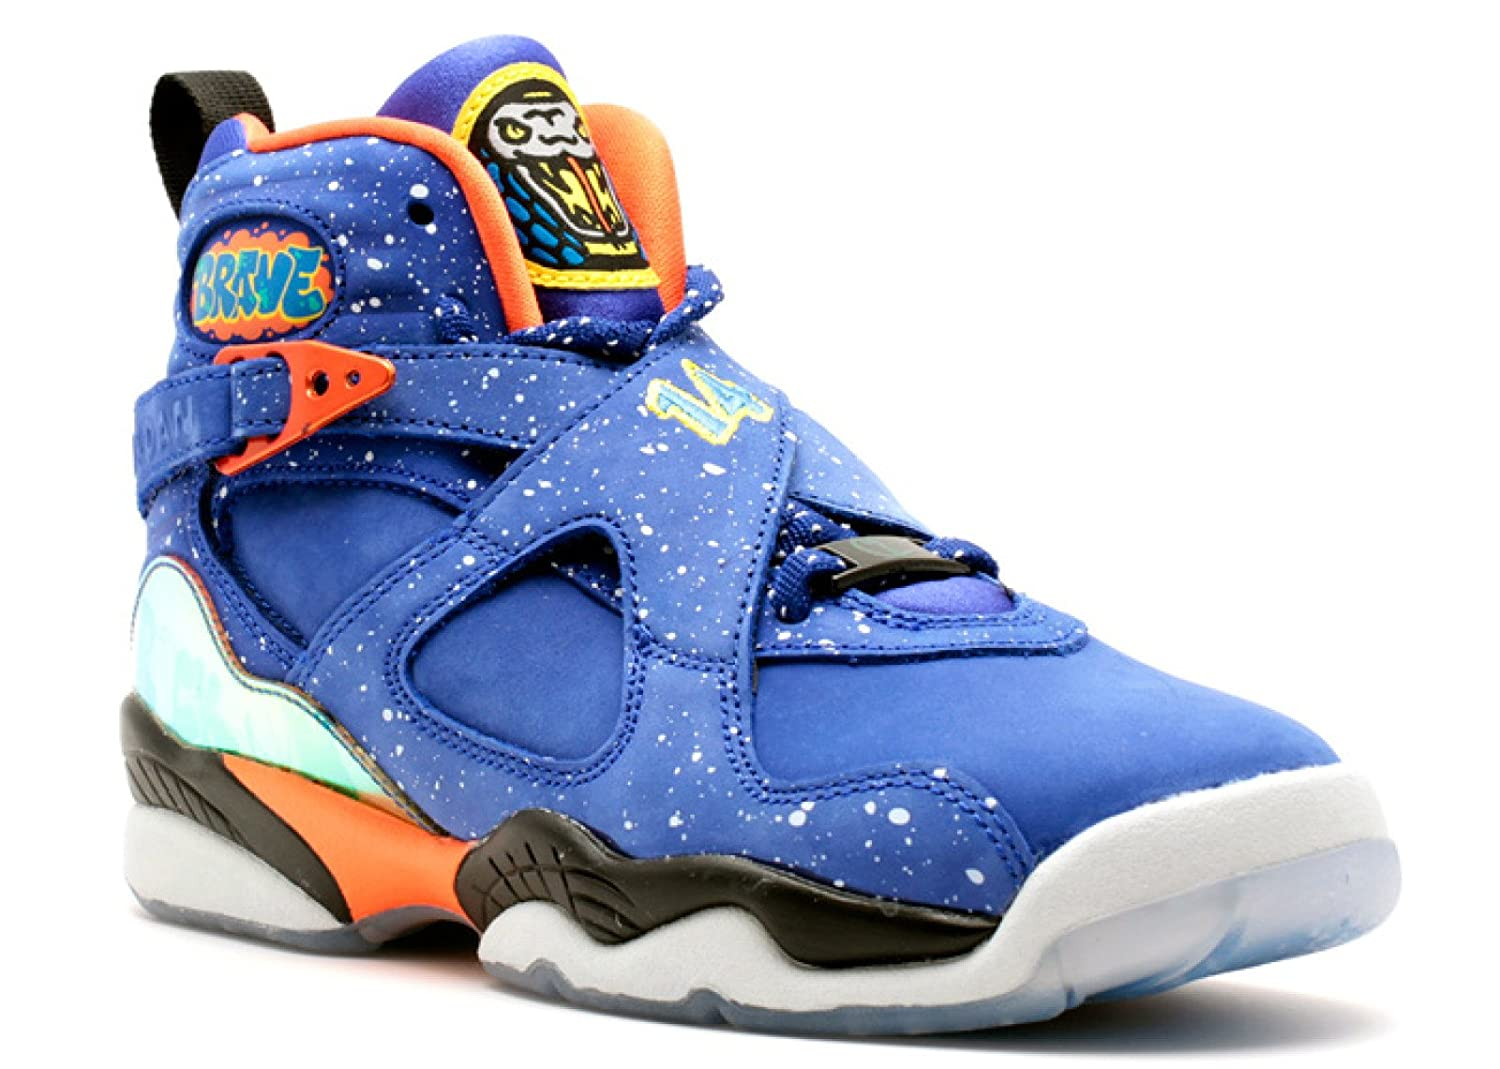 official photos 7758f c7c2e Amazon.com | Jordan Air 8 Retro Doernbecher DB (GS) 729894 ...